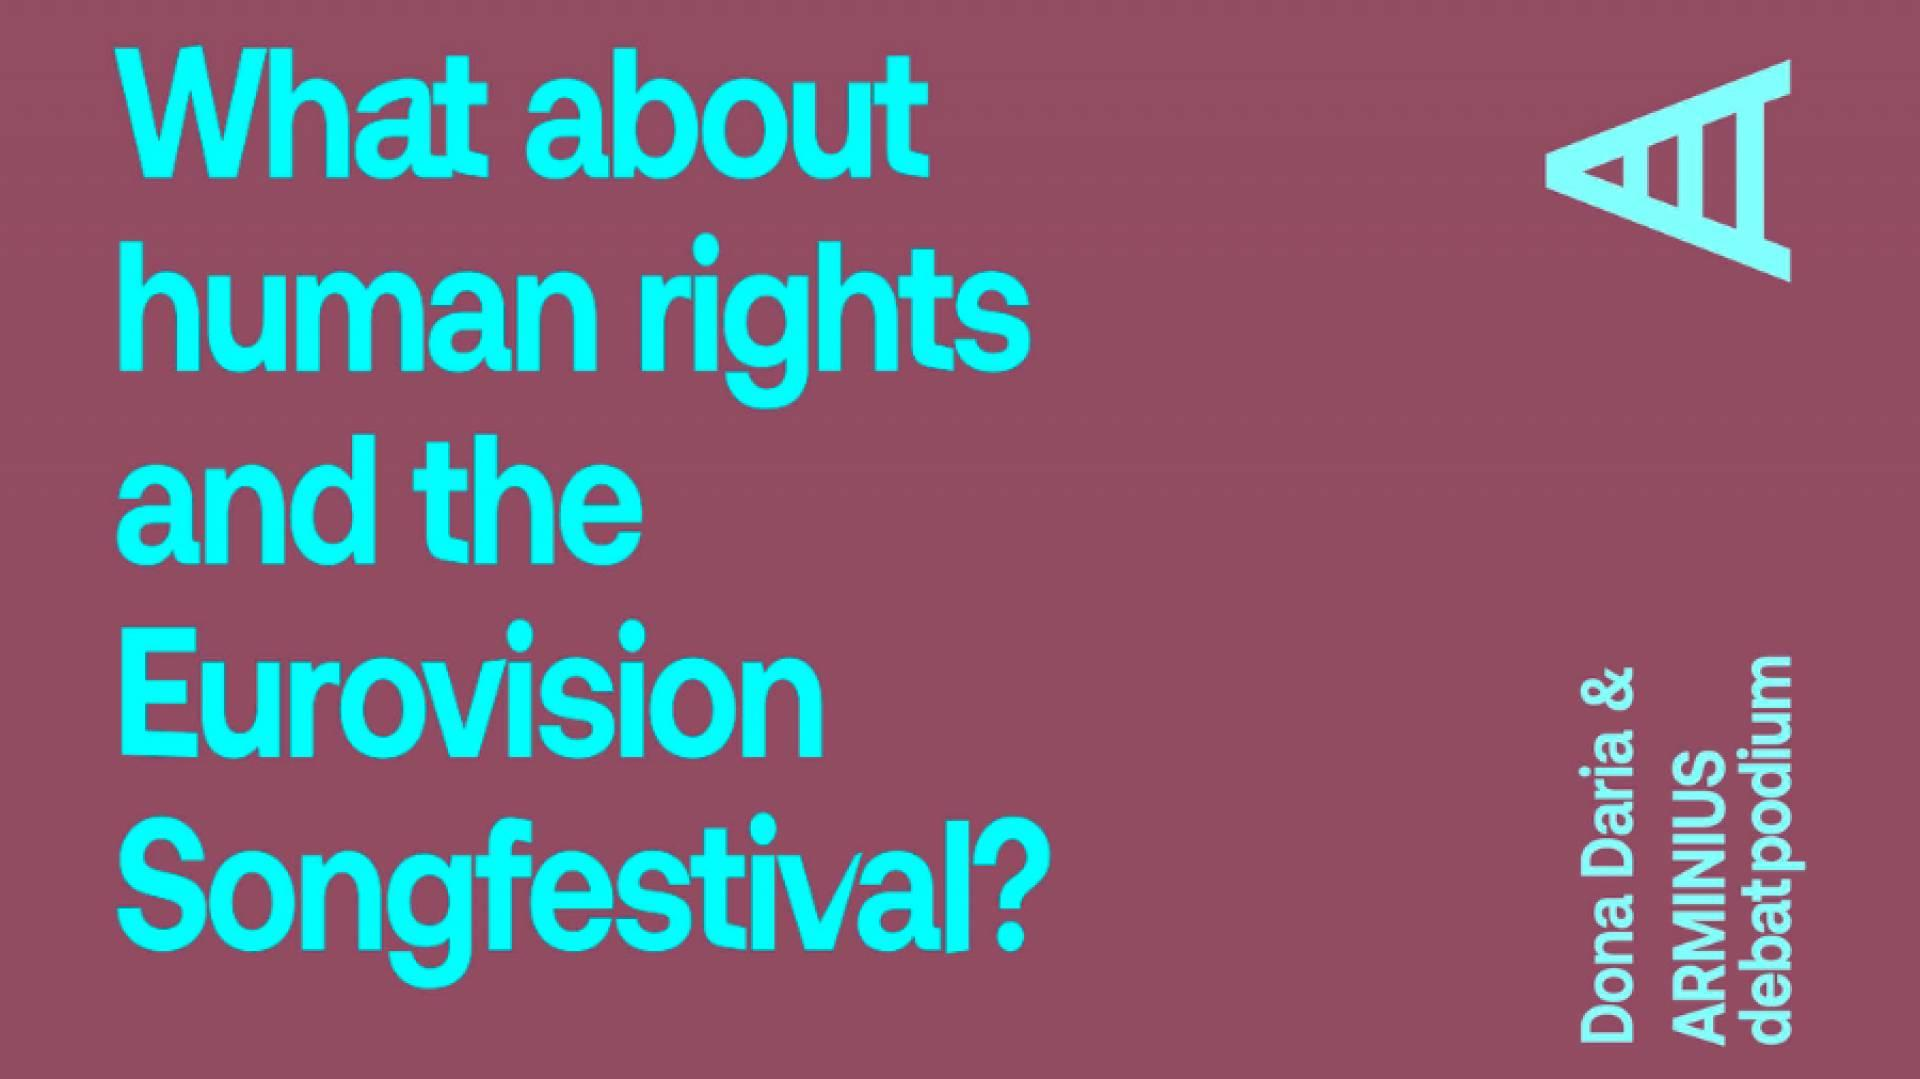 Songfestival: Open Up to Human Rights